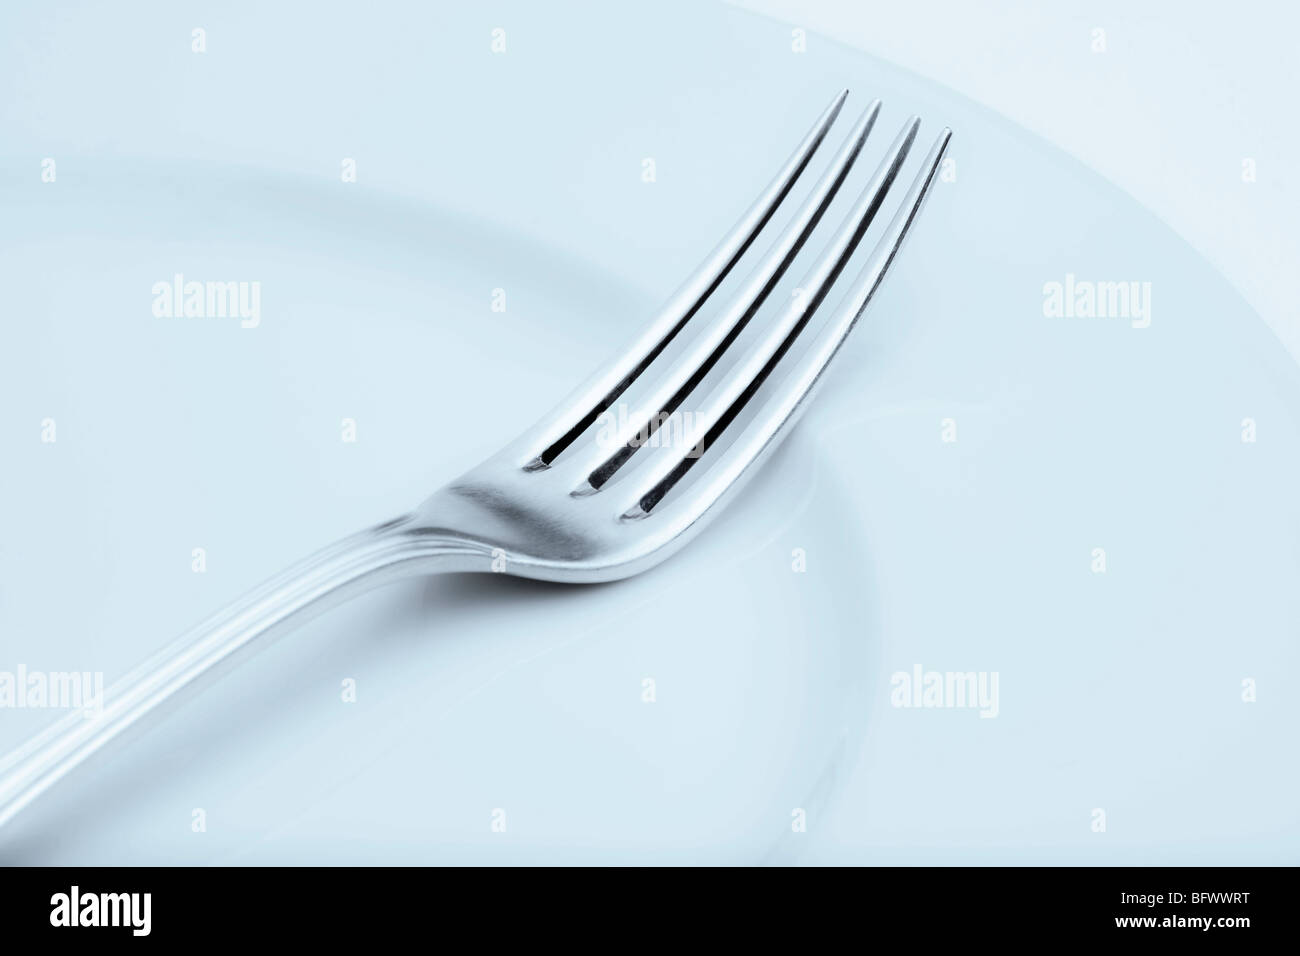 elegant table setting with silverware and plate-closeup of a fork - Stock Image